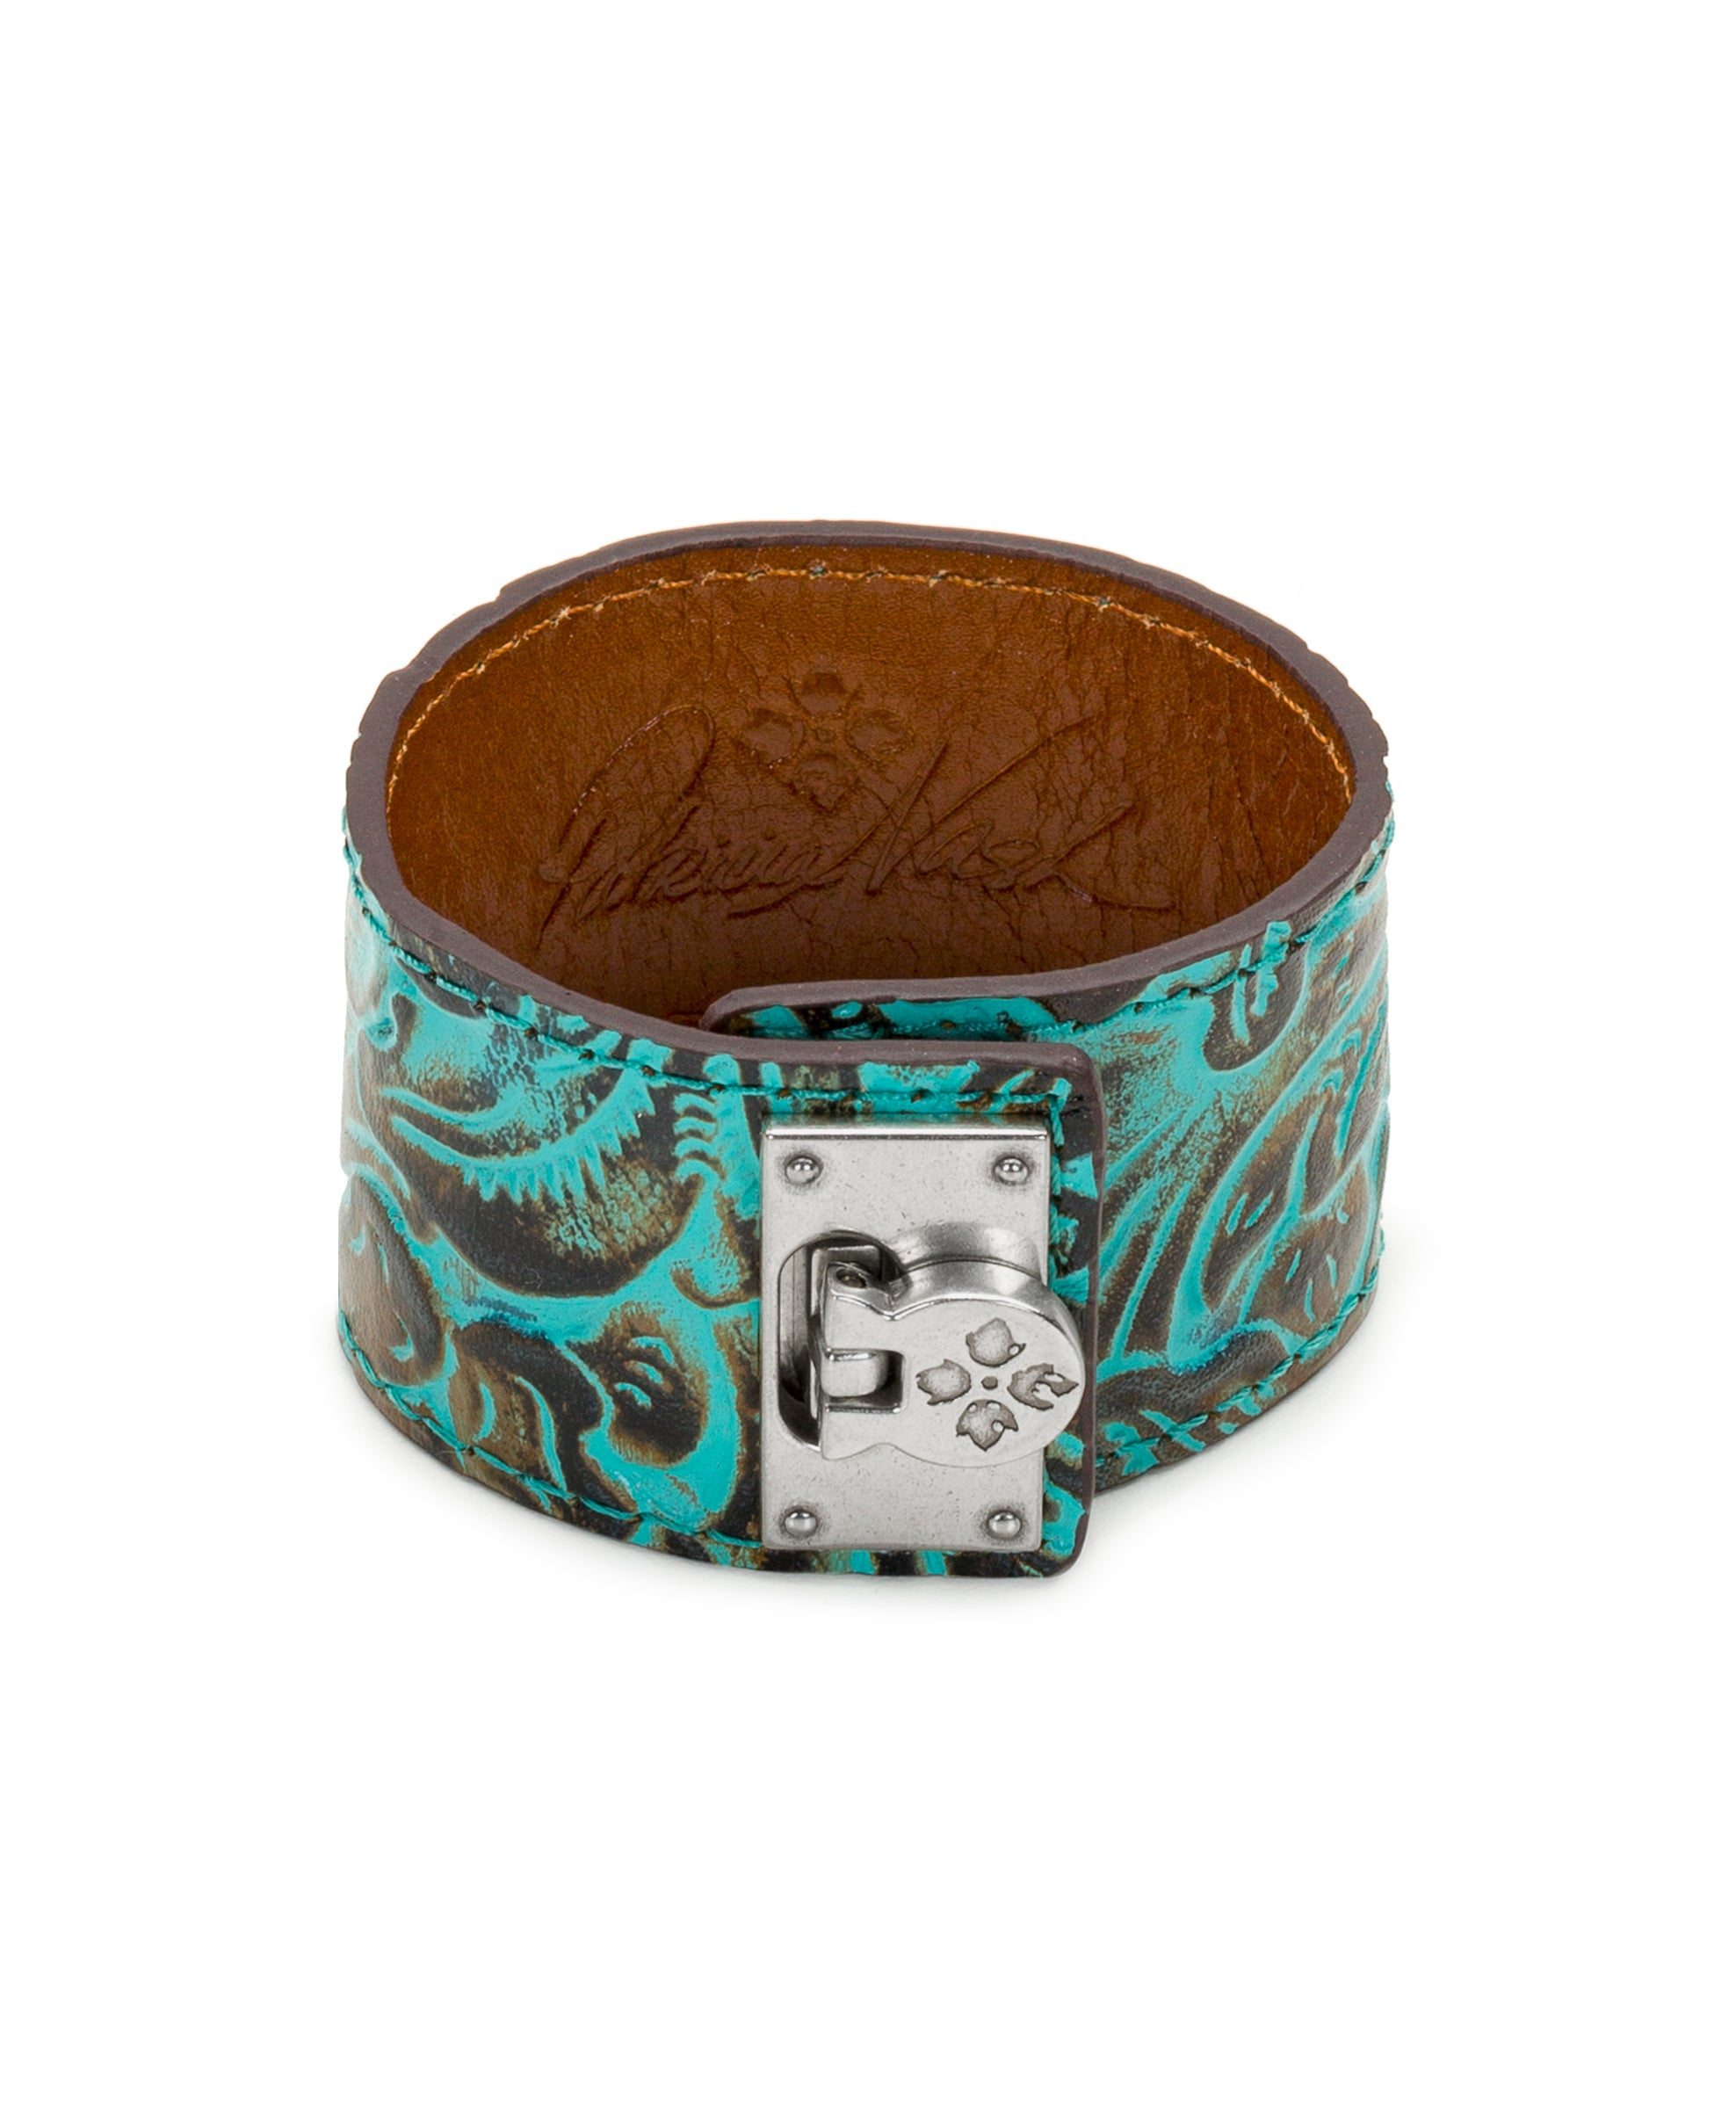 Irena Turquoise Leather Cuff - Irena Turquoise Leather Cuff